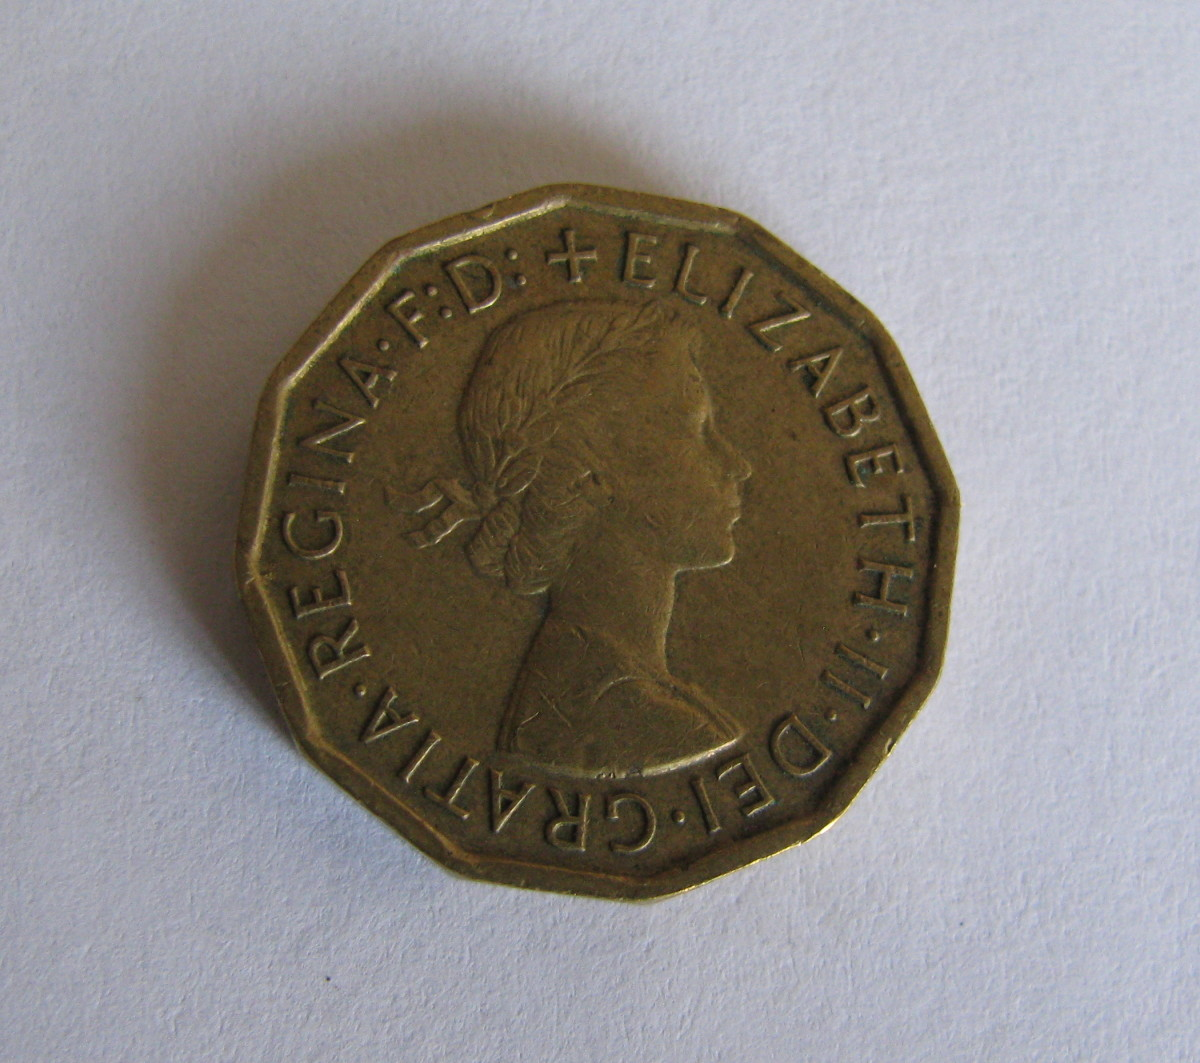 Three pence piece with a younger Queen Elizabeth II